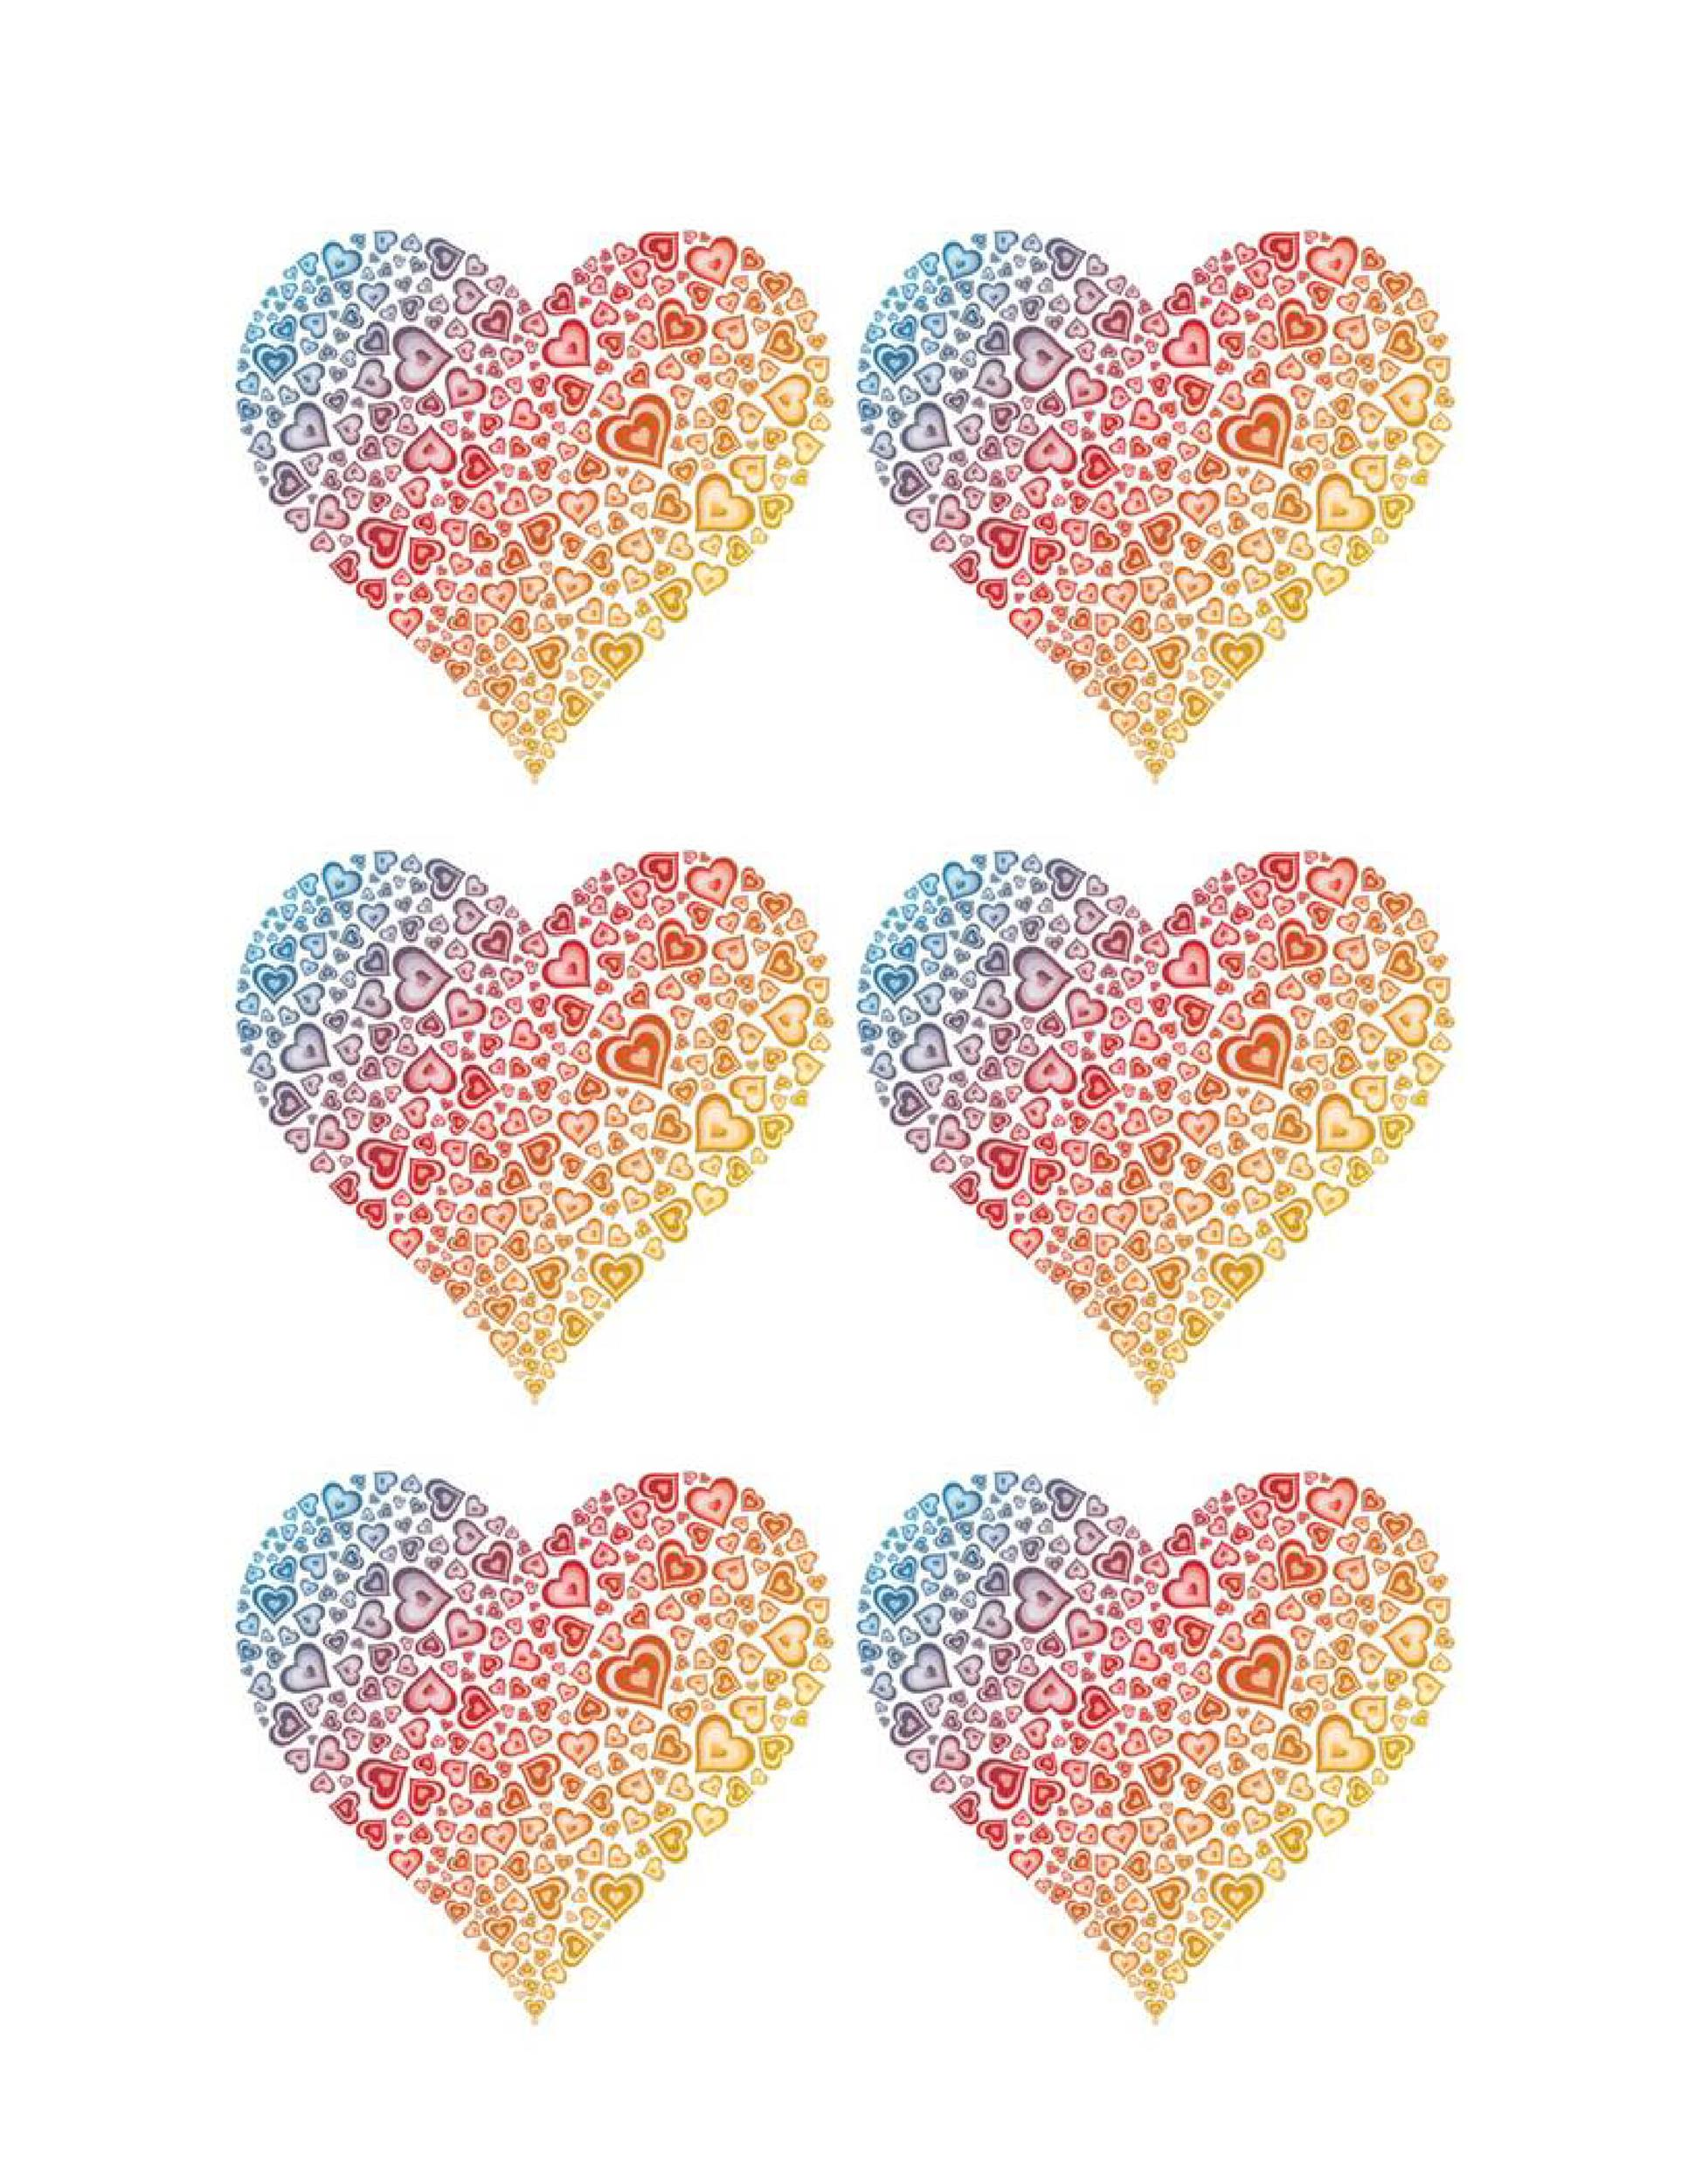 image about Hearts Printable referred to as 40 Printable Centre Templates 15 Intake Illustrations